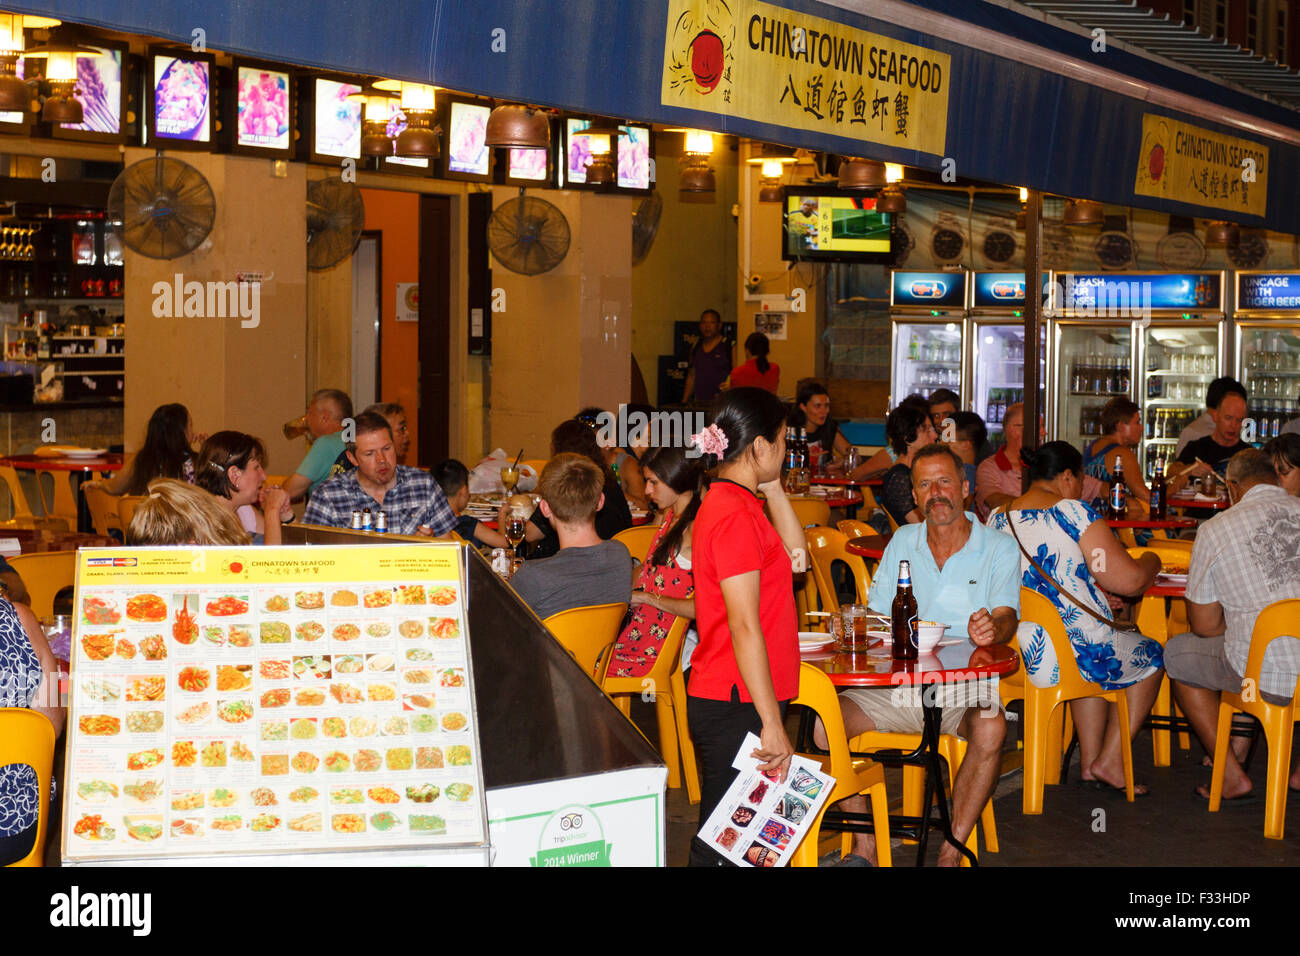 People dining in a seafood restaurant in Chinatown in Singapore - Stock Image